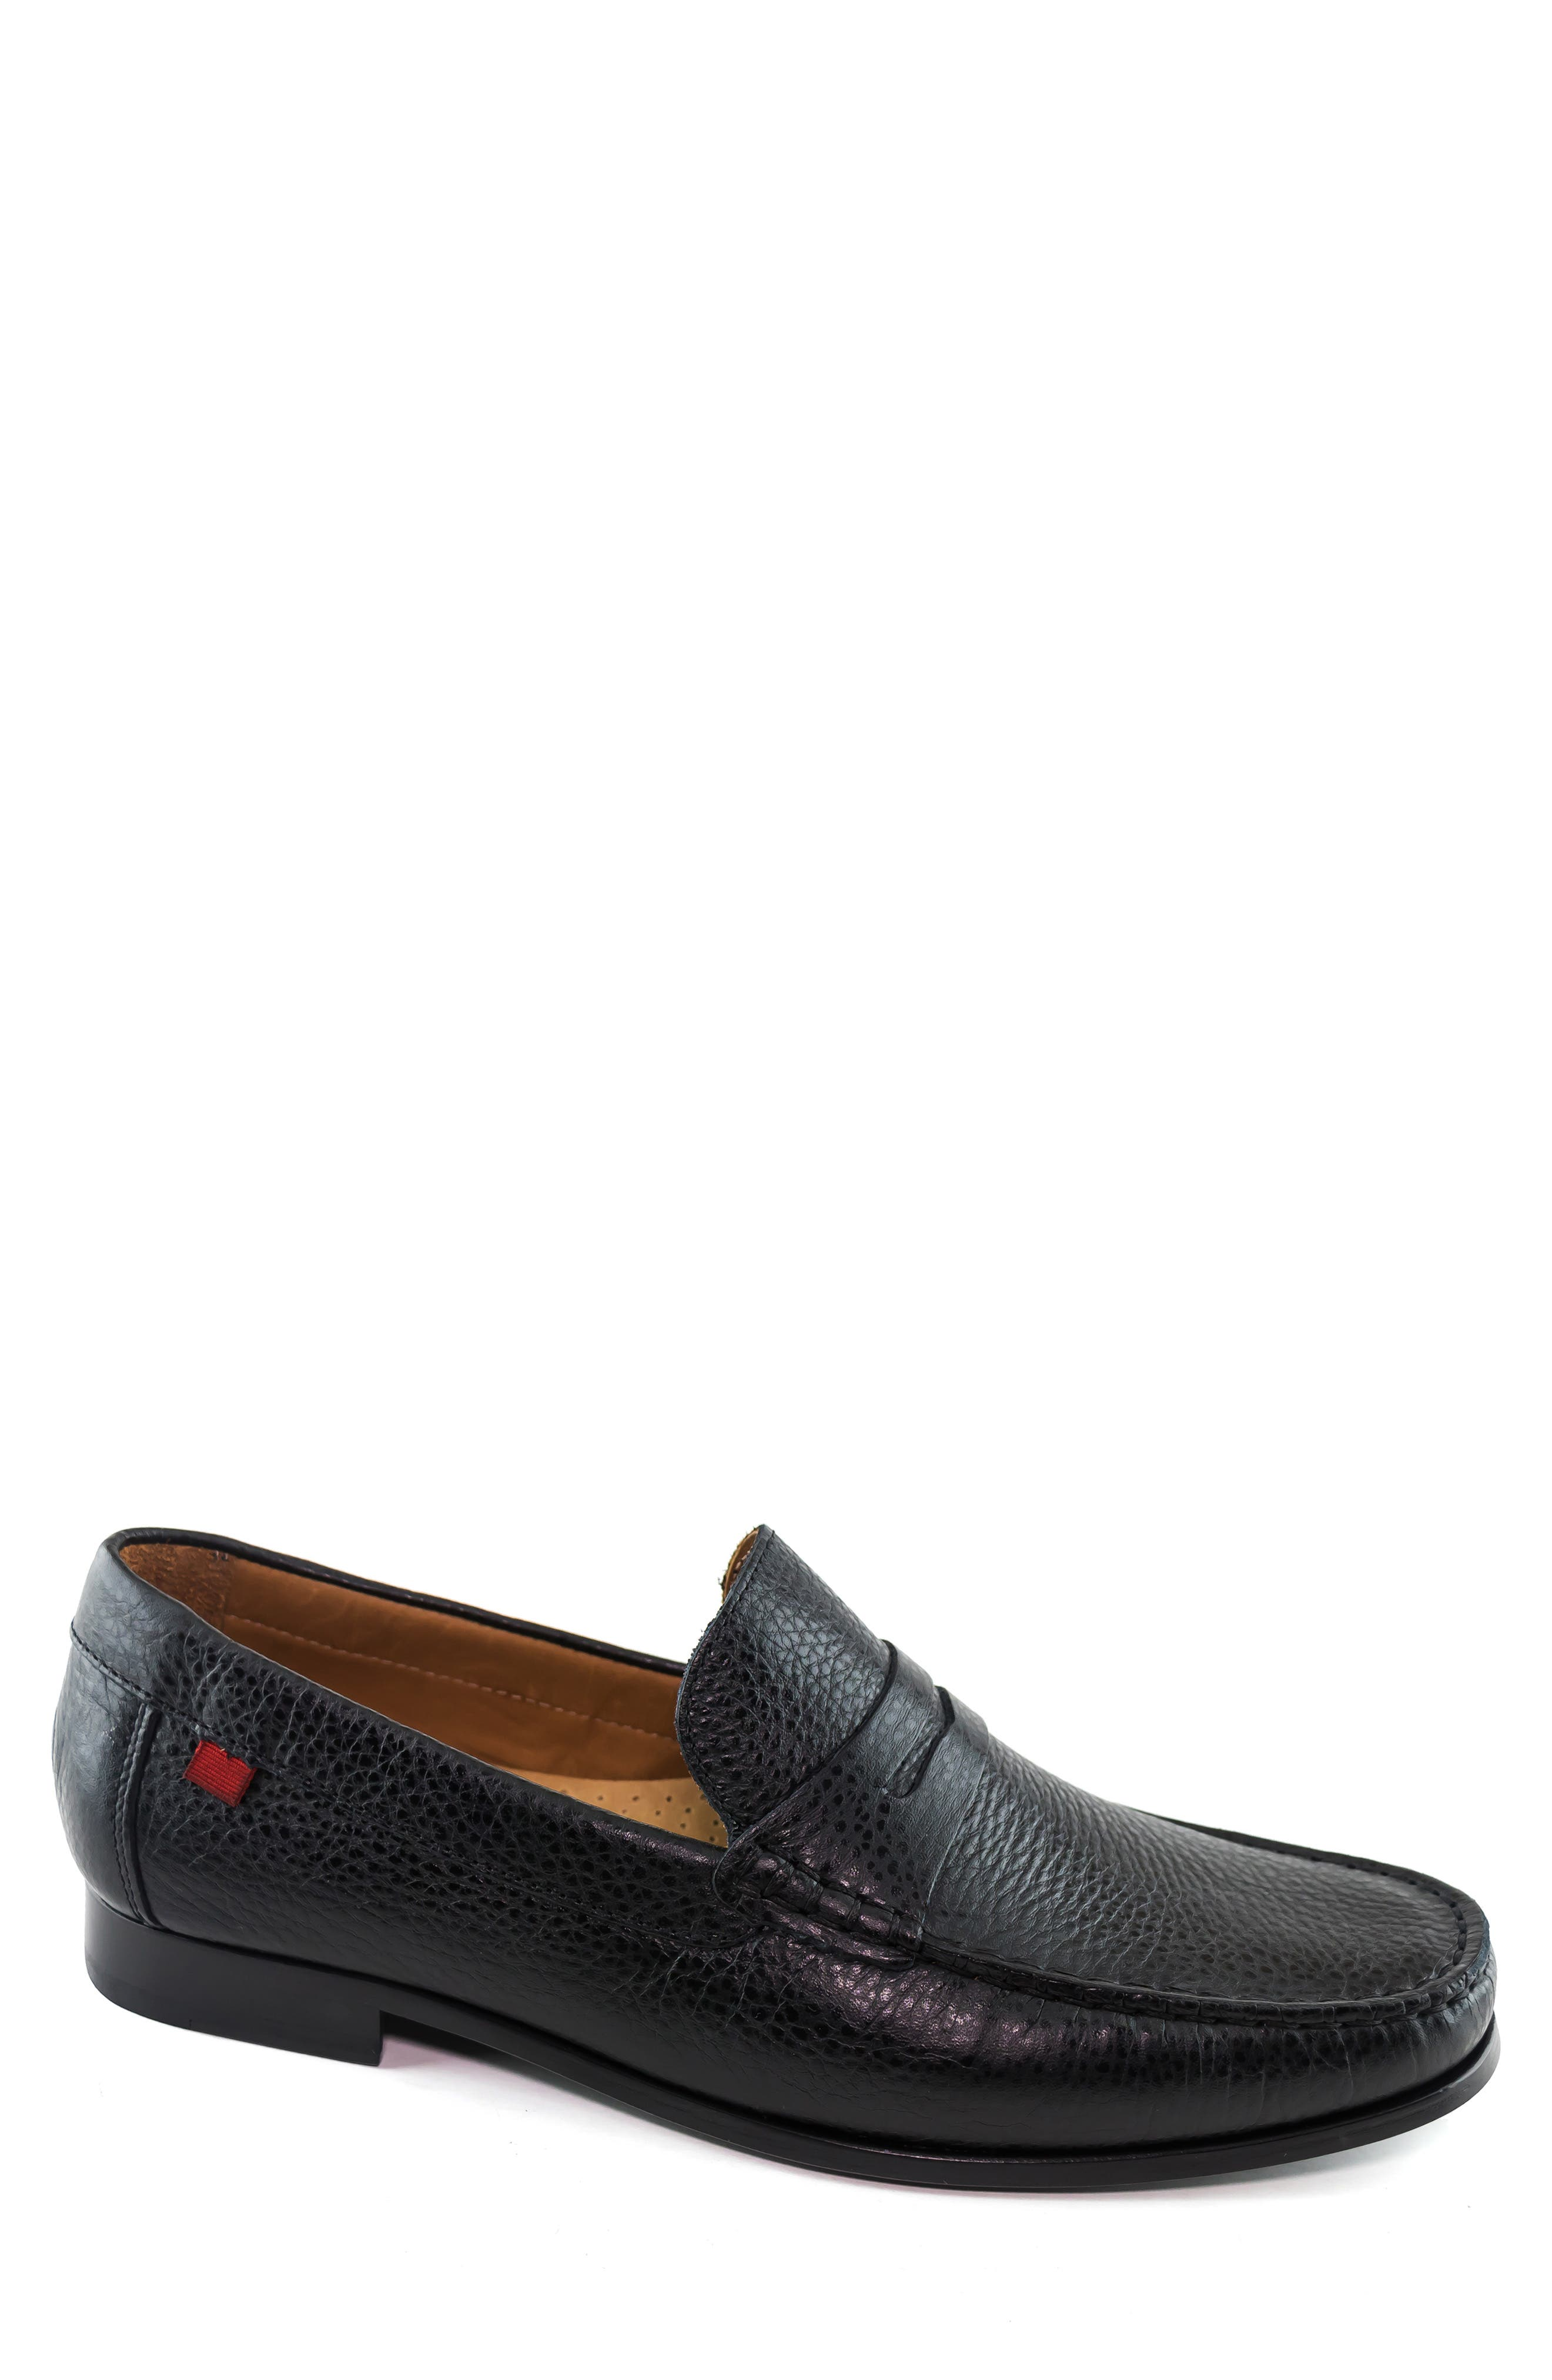 Richly textured nappa calfskin defines a stylish, artisan-made loafer with a flexible sole and smart arch support. Style Name: Marc Joseph New York Windsor Penny Loafer (Men). Style Number: 5829473. Available in stores.